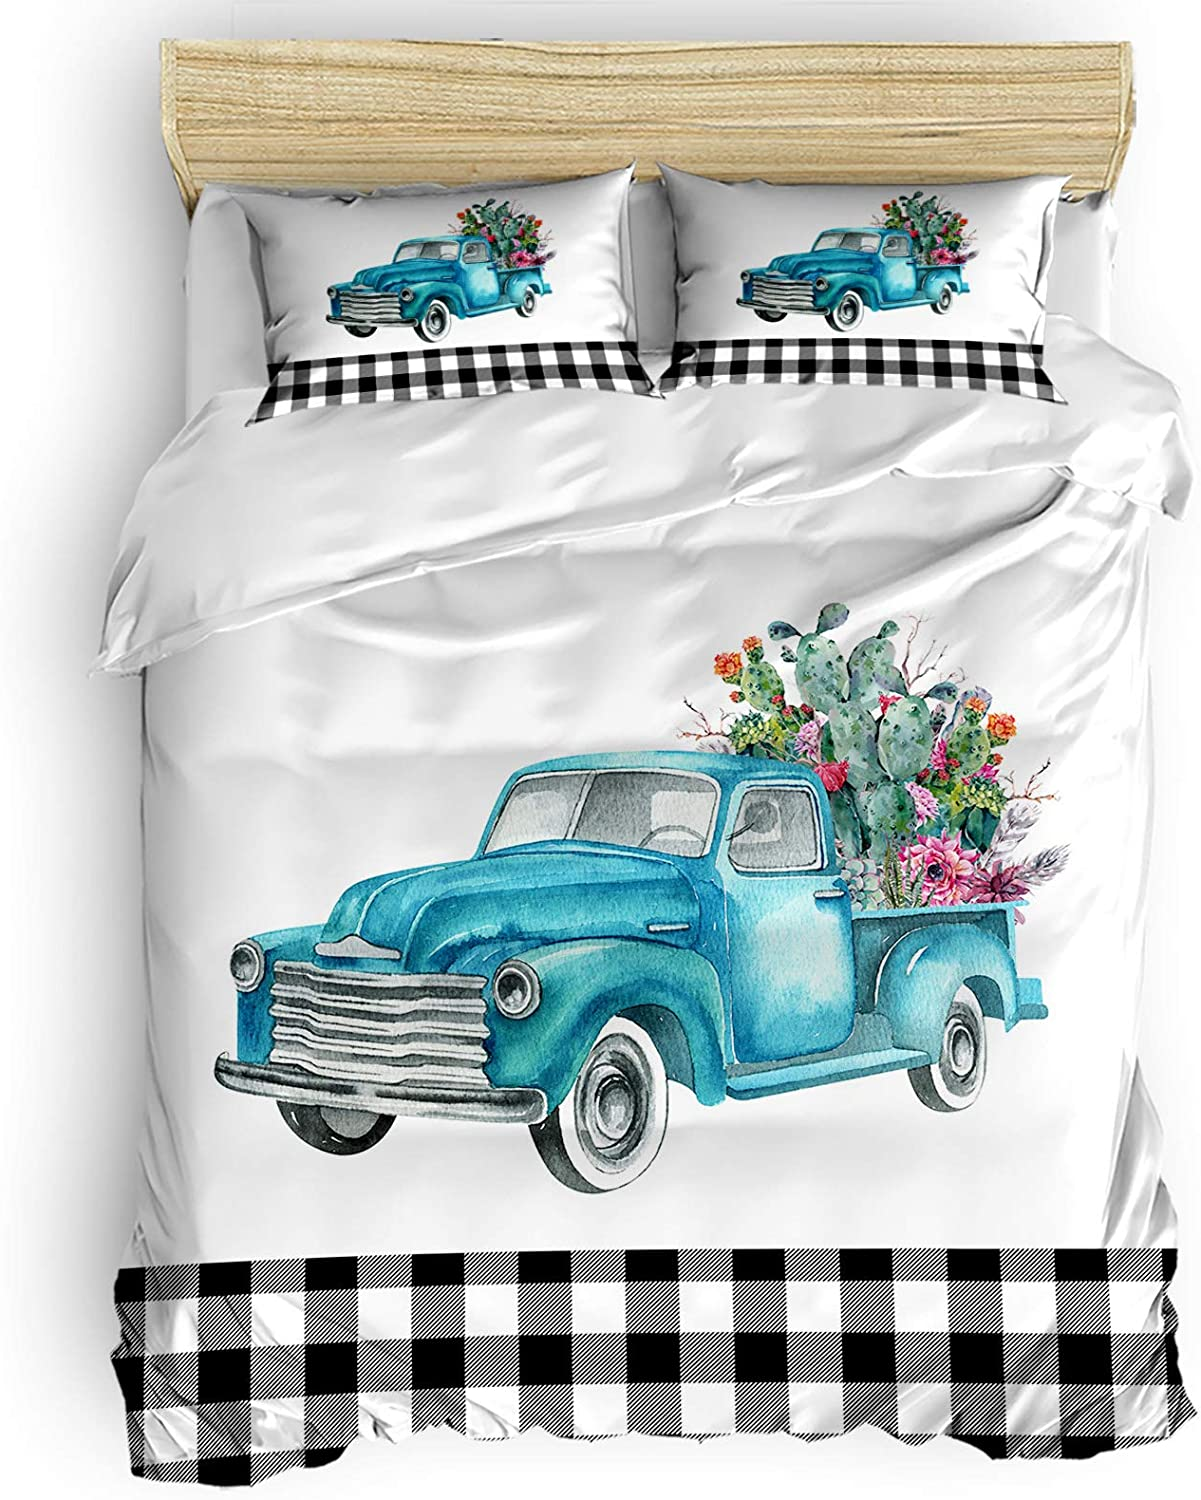 4 Pcs Duvet Cover Set Inventory cleanup selling sale Topics on TV Soft Duve Closure Bedding Zipper with